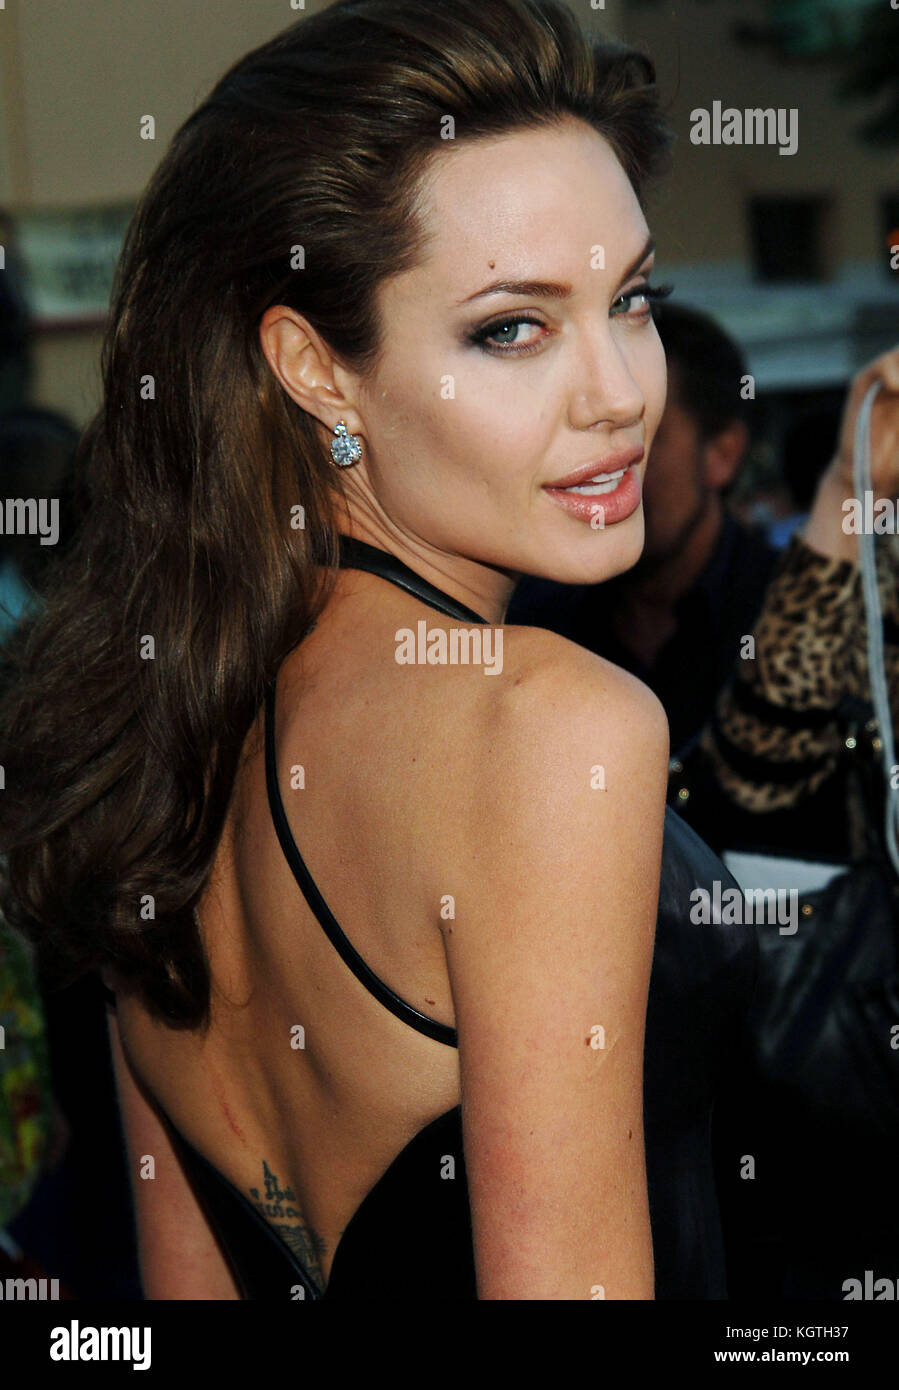 Angelina Jolie arriving at the Mr & Ms Smith Premiere at the Westwood Village Theatre in Los Angeles. June 7, - Stock Image